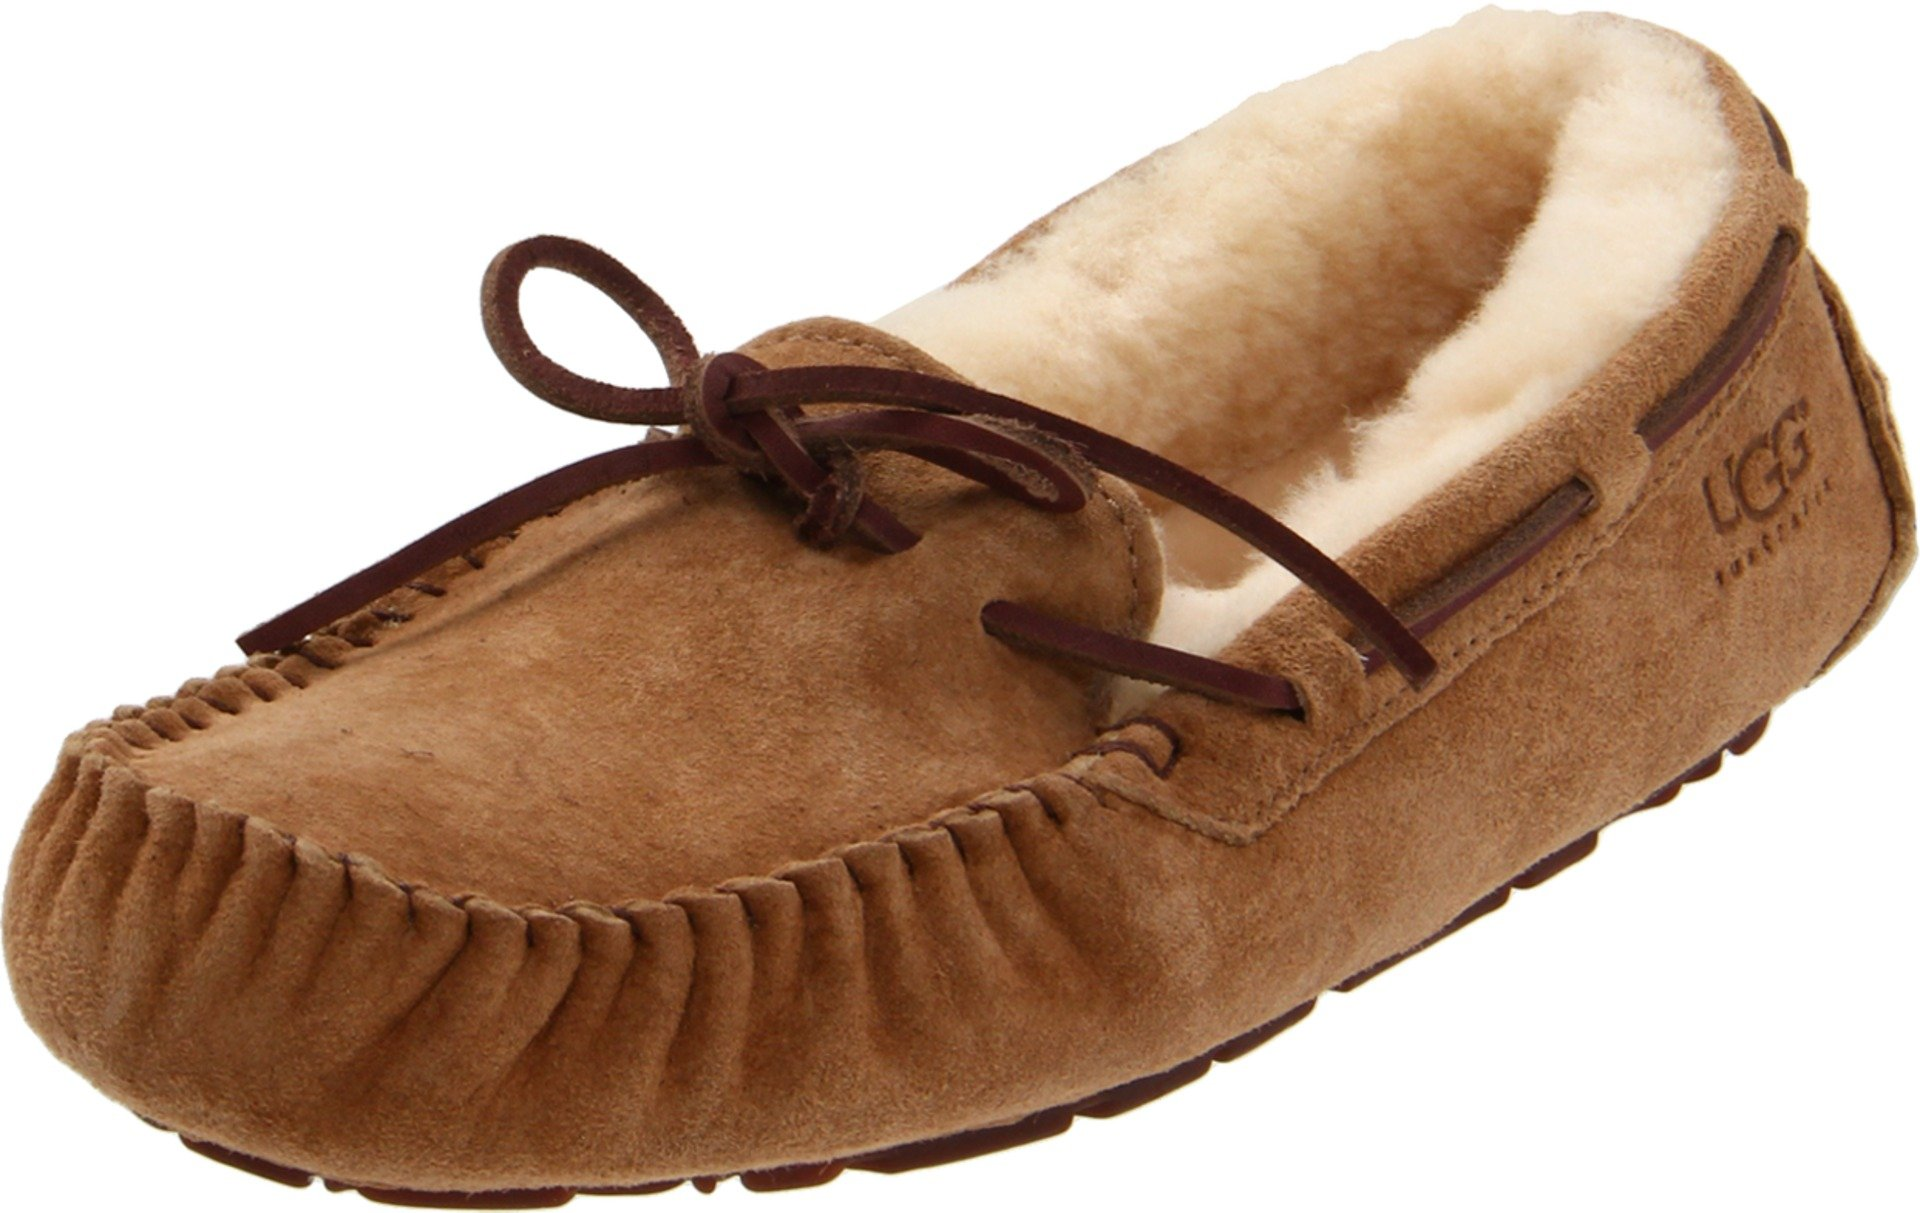 UGG Women's Dakota Moccasin, CHESTNUT, 8 B US by UGG (Image #1)